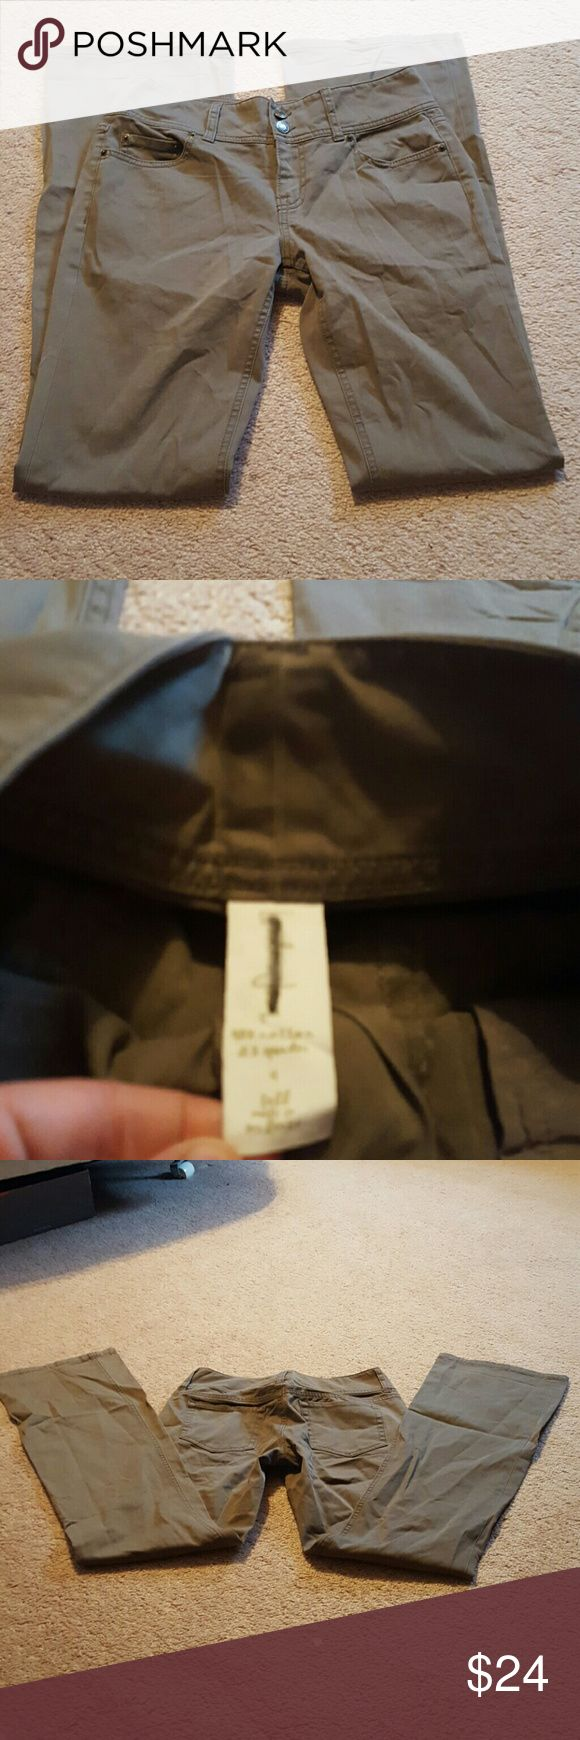 London Jeans Olive Pants Size 4 Tall Like New London Jeans Olive Pants Size 4 Tall Like New London Jean Jeans